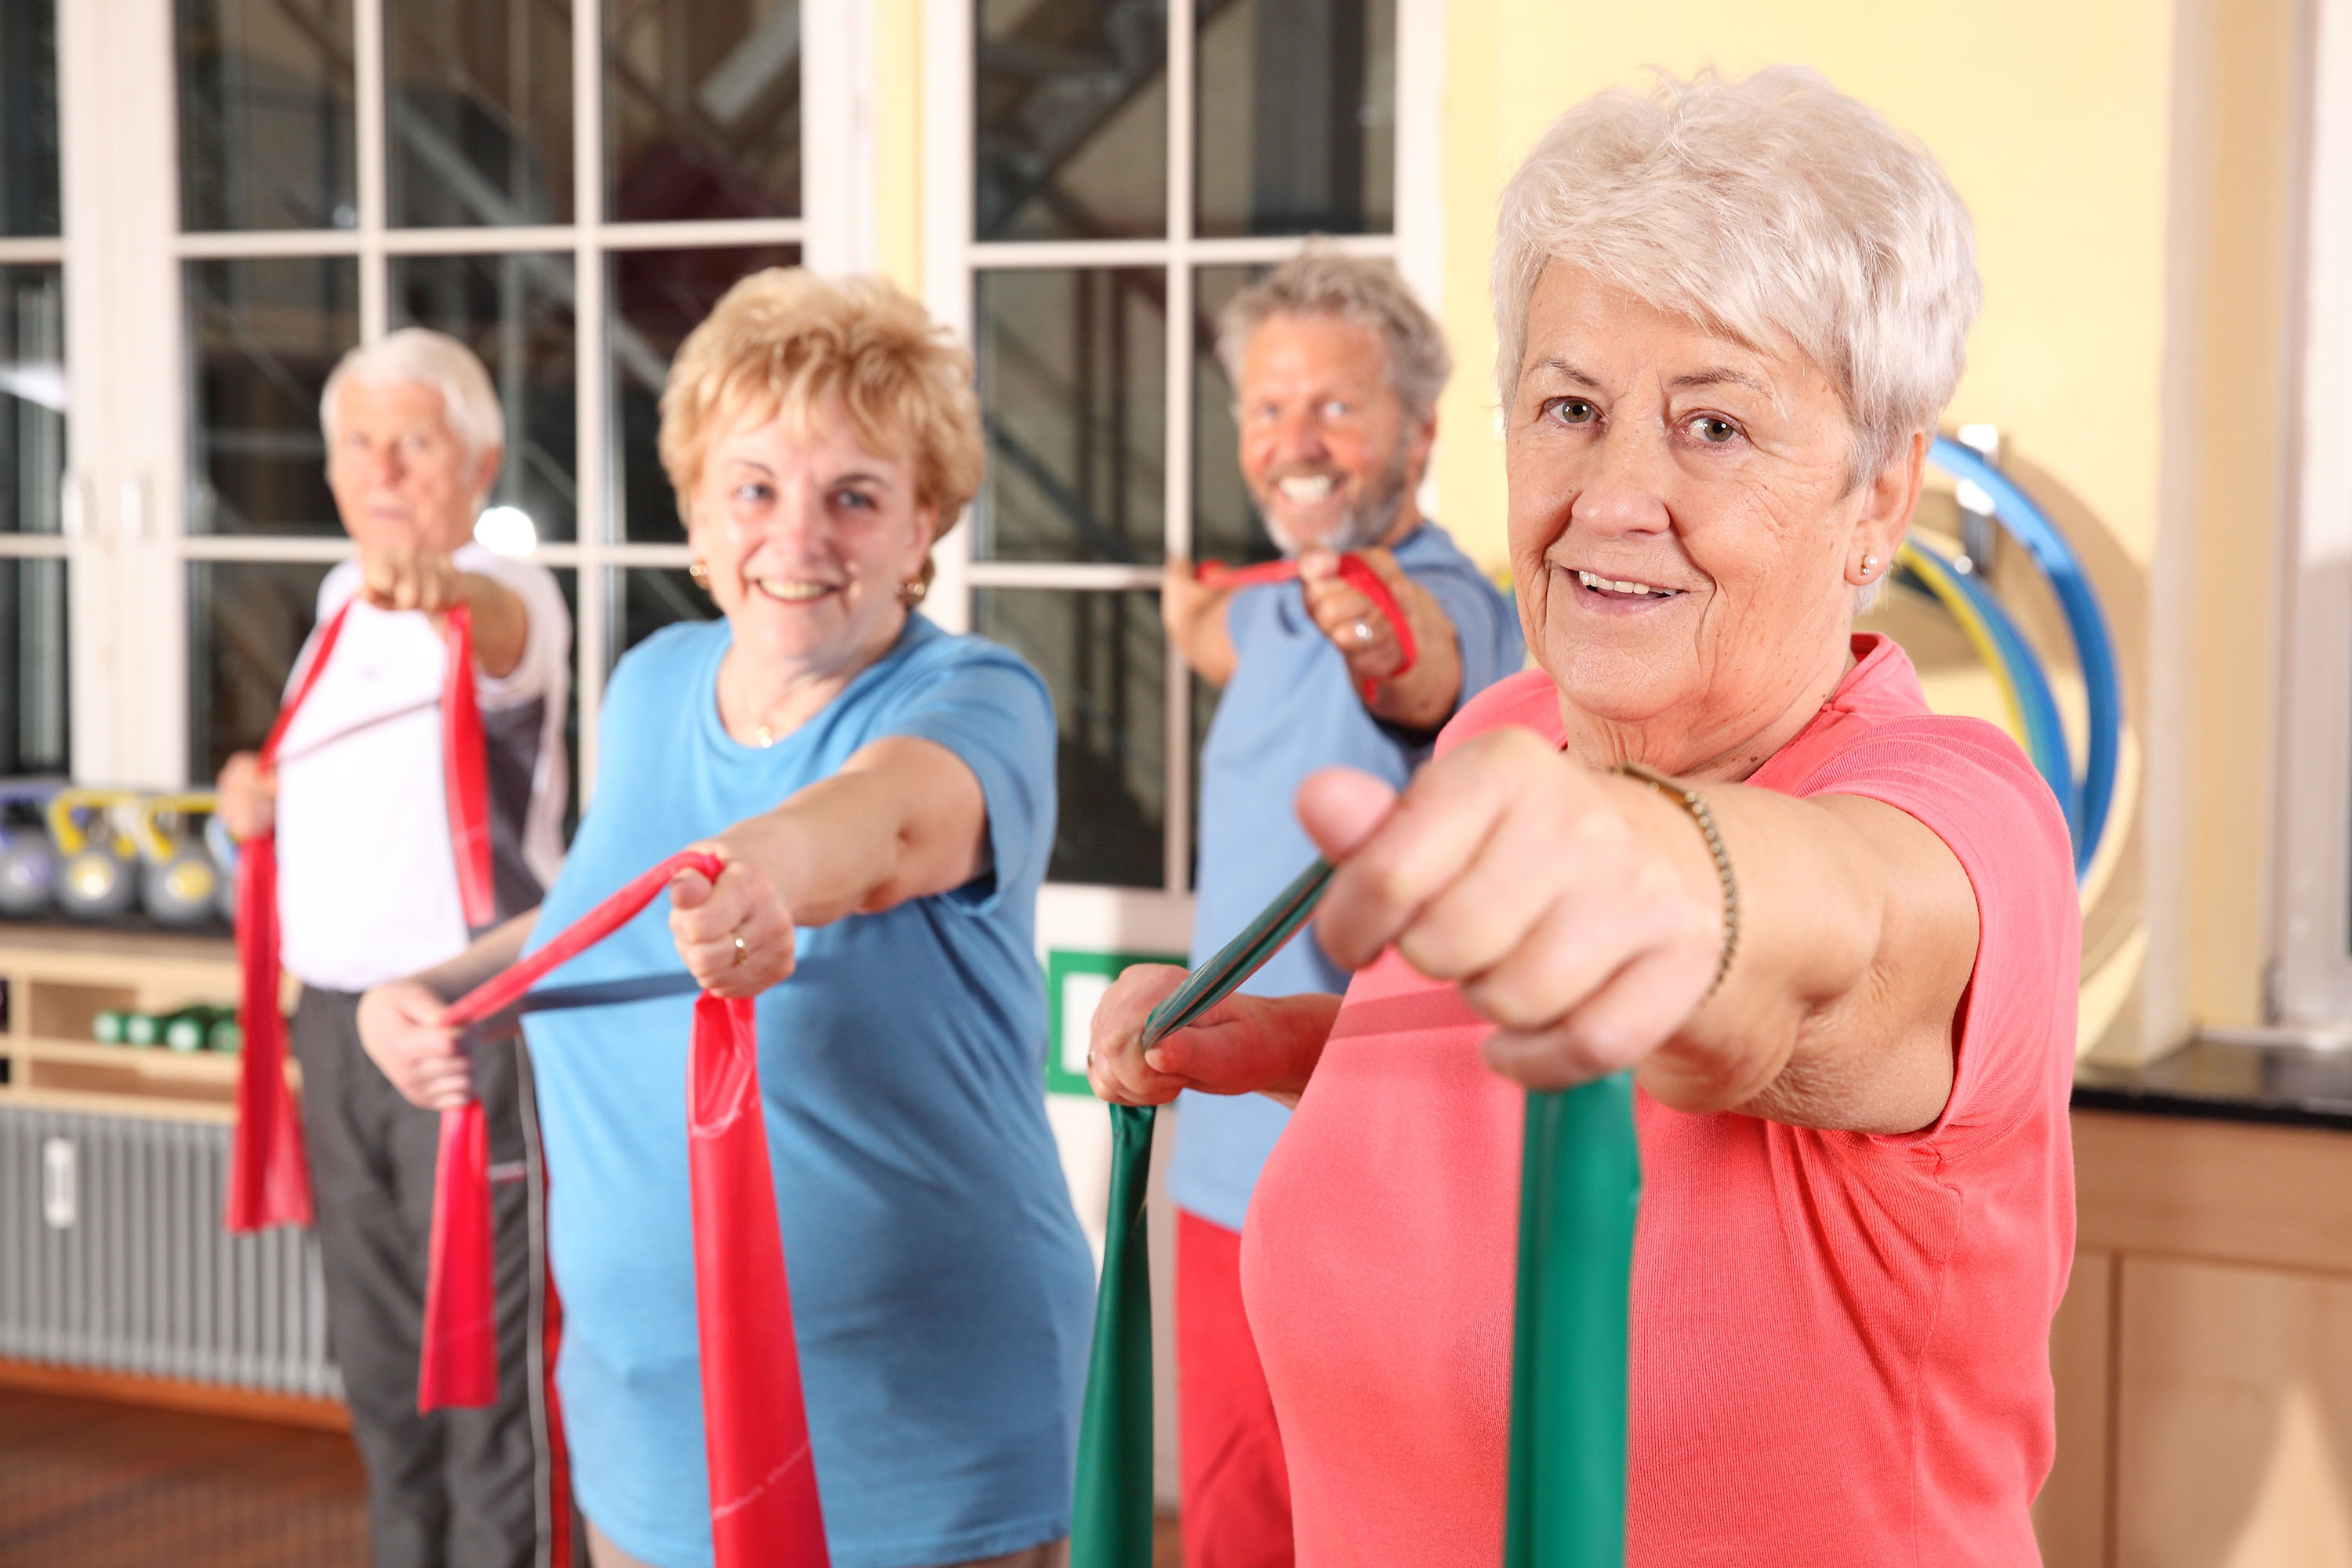 Resistance exercises for osteoporosis